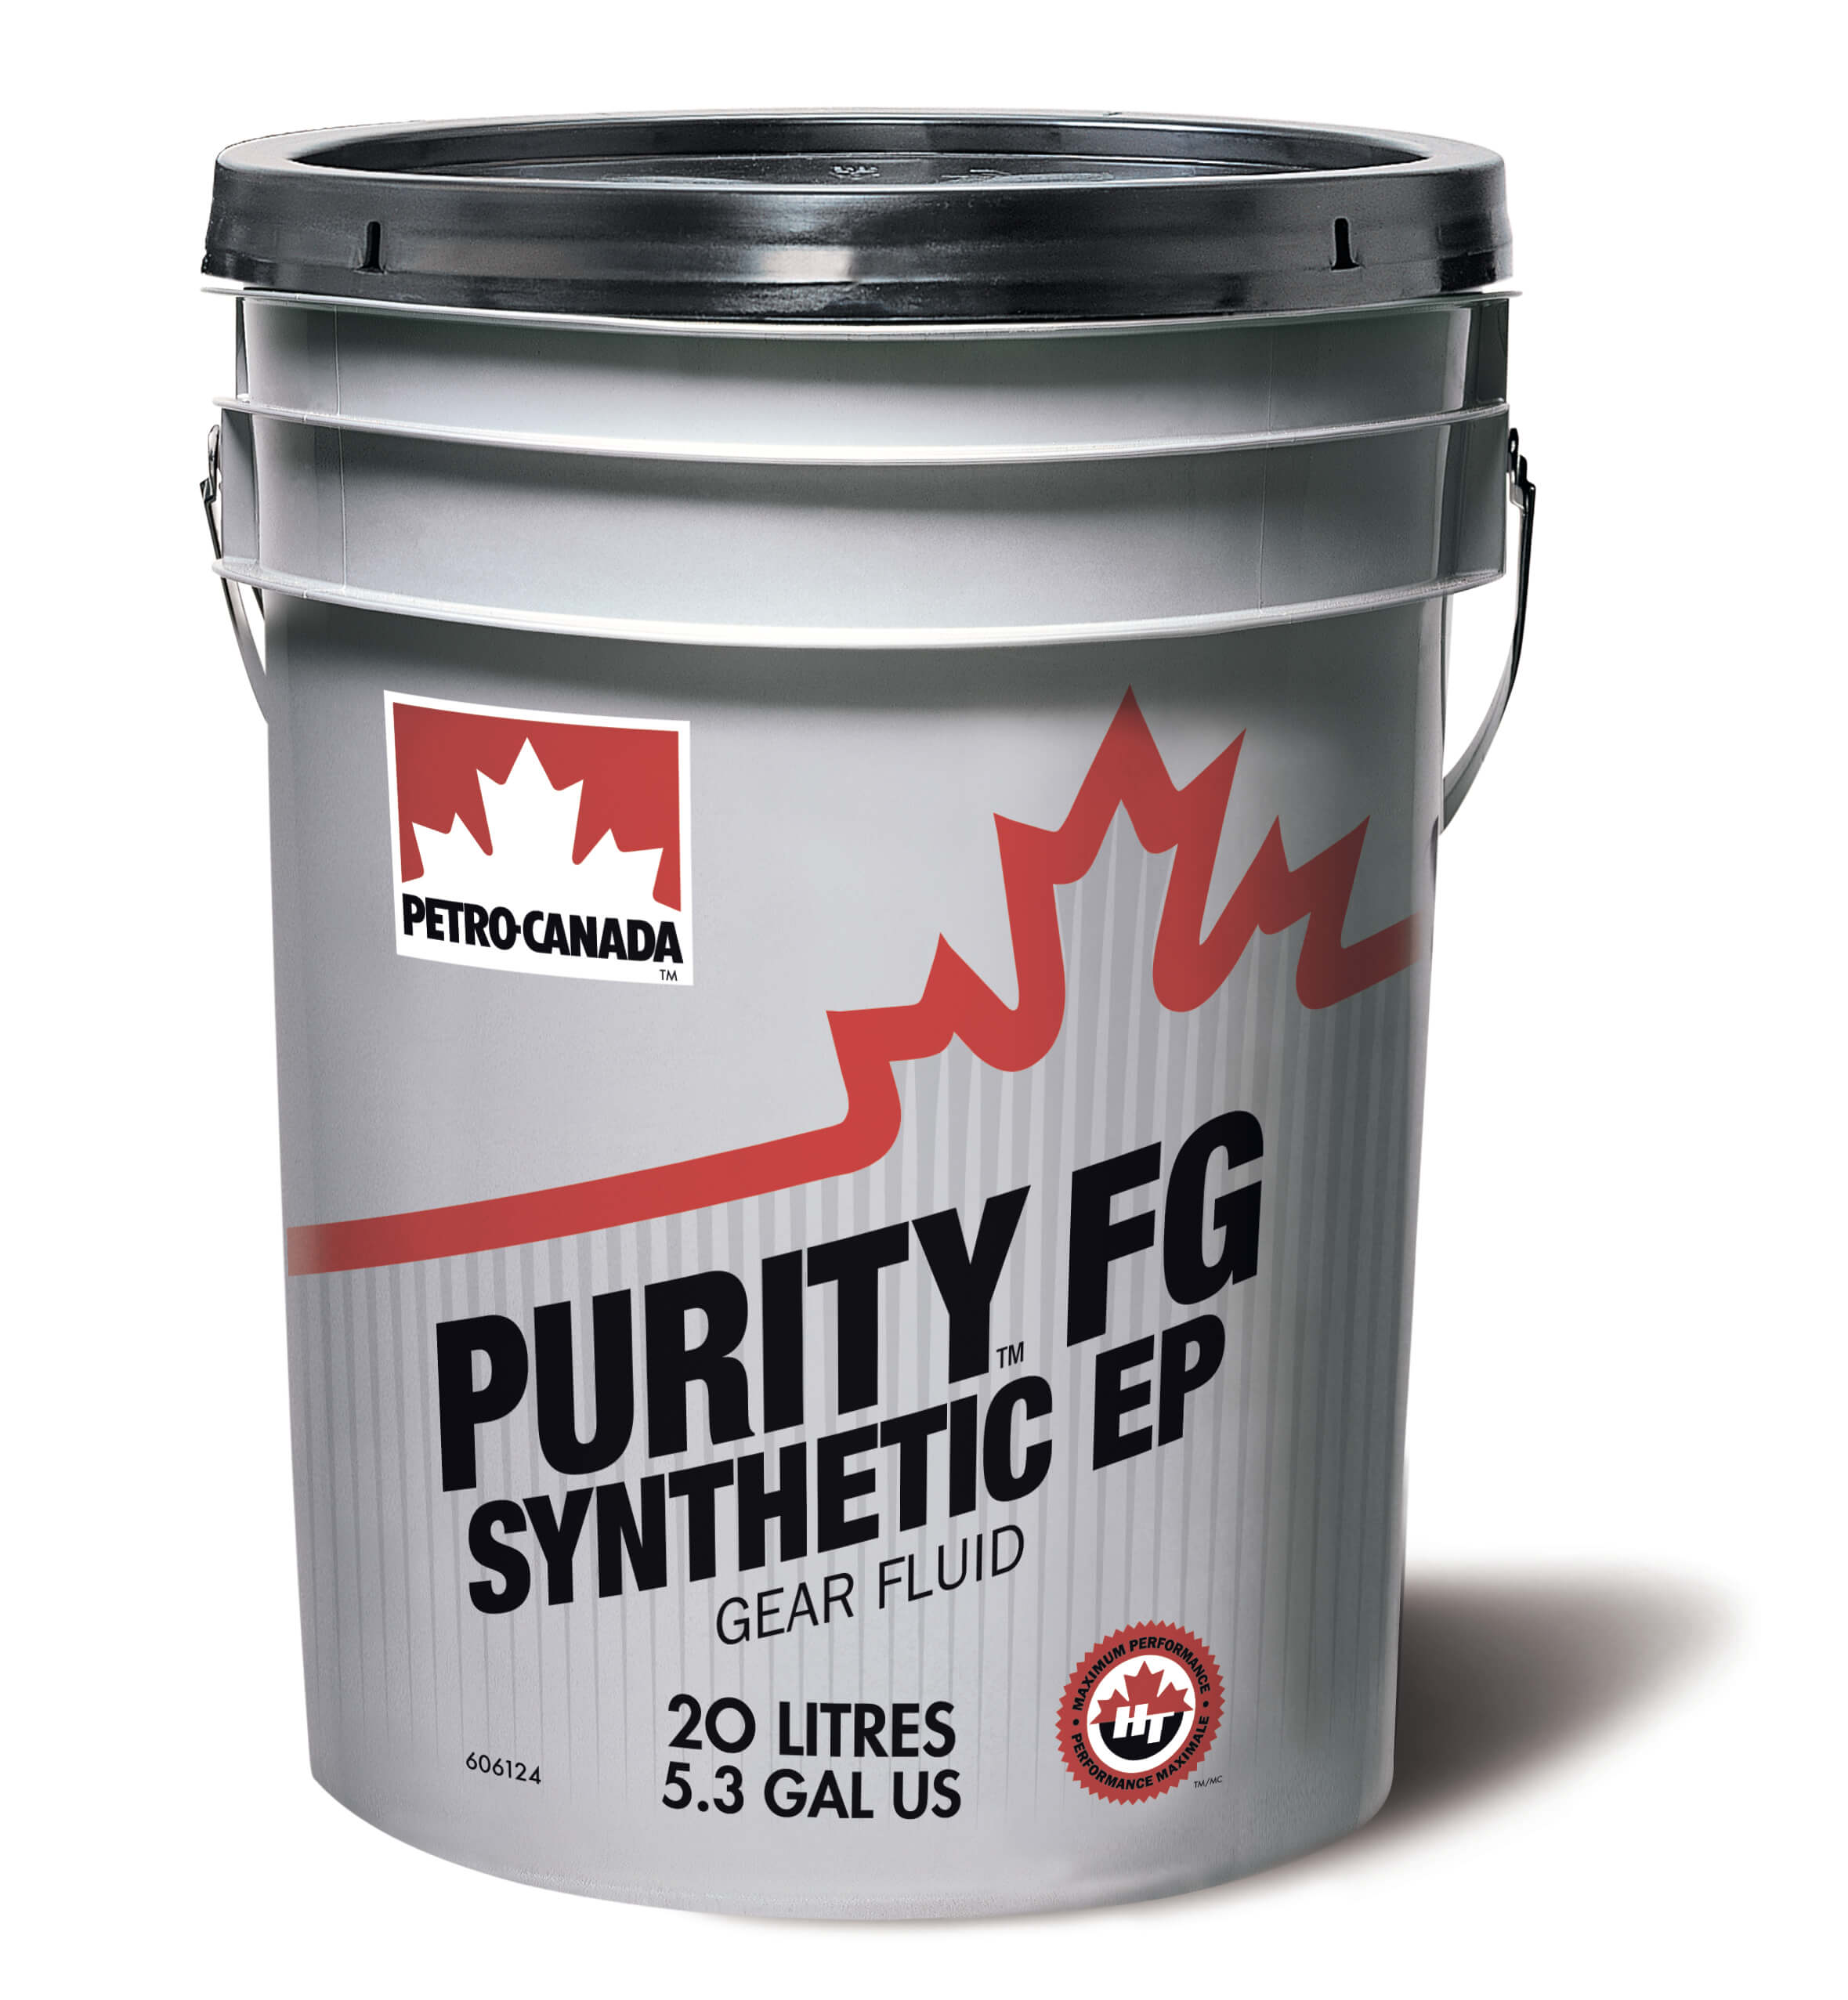 Petro Canada Purity FG Syn EP Gear Oil 220